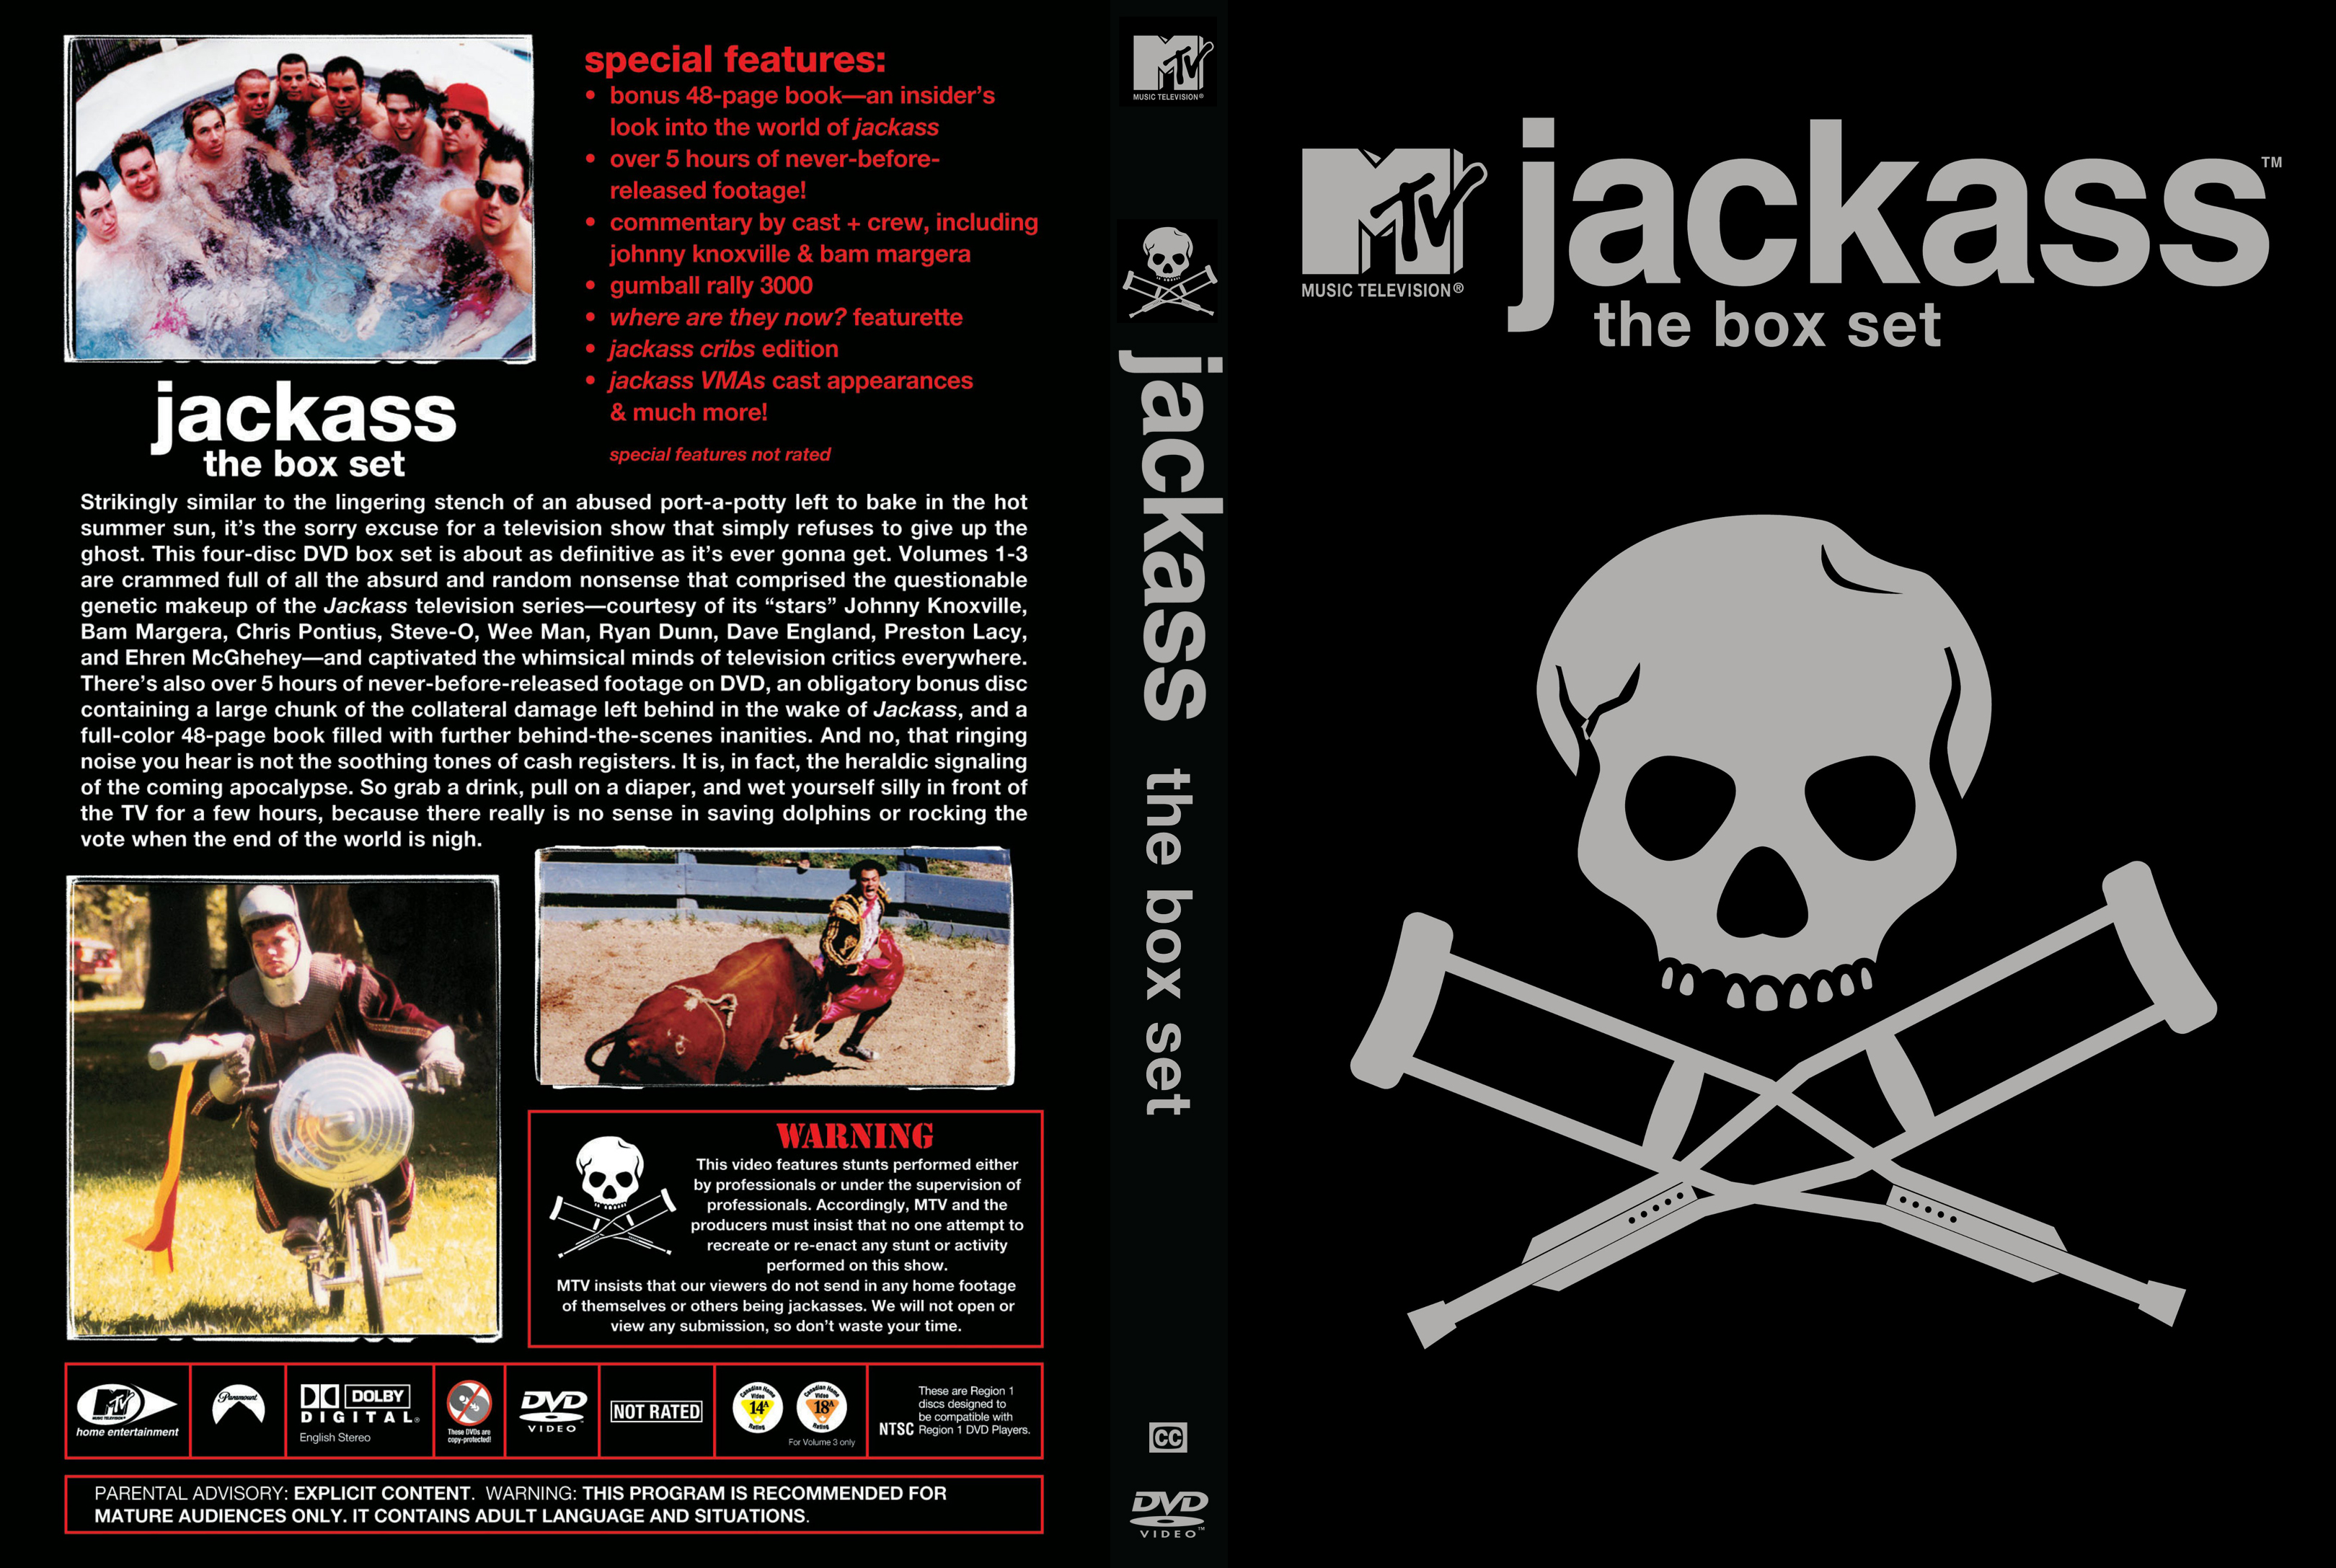 Congratulate, your jack ass volume 1 all became